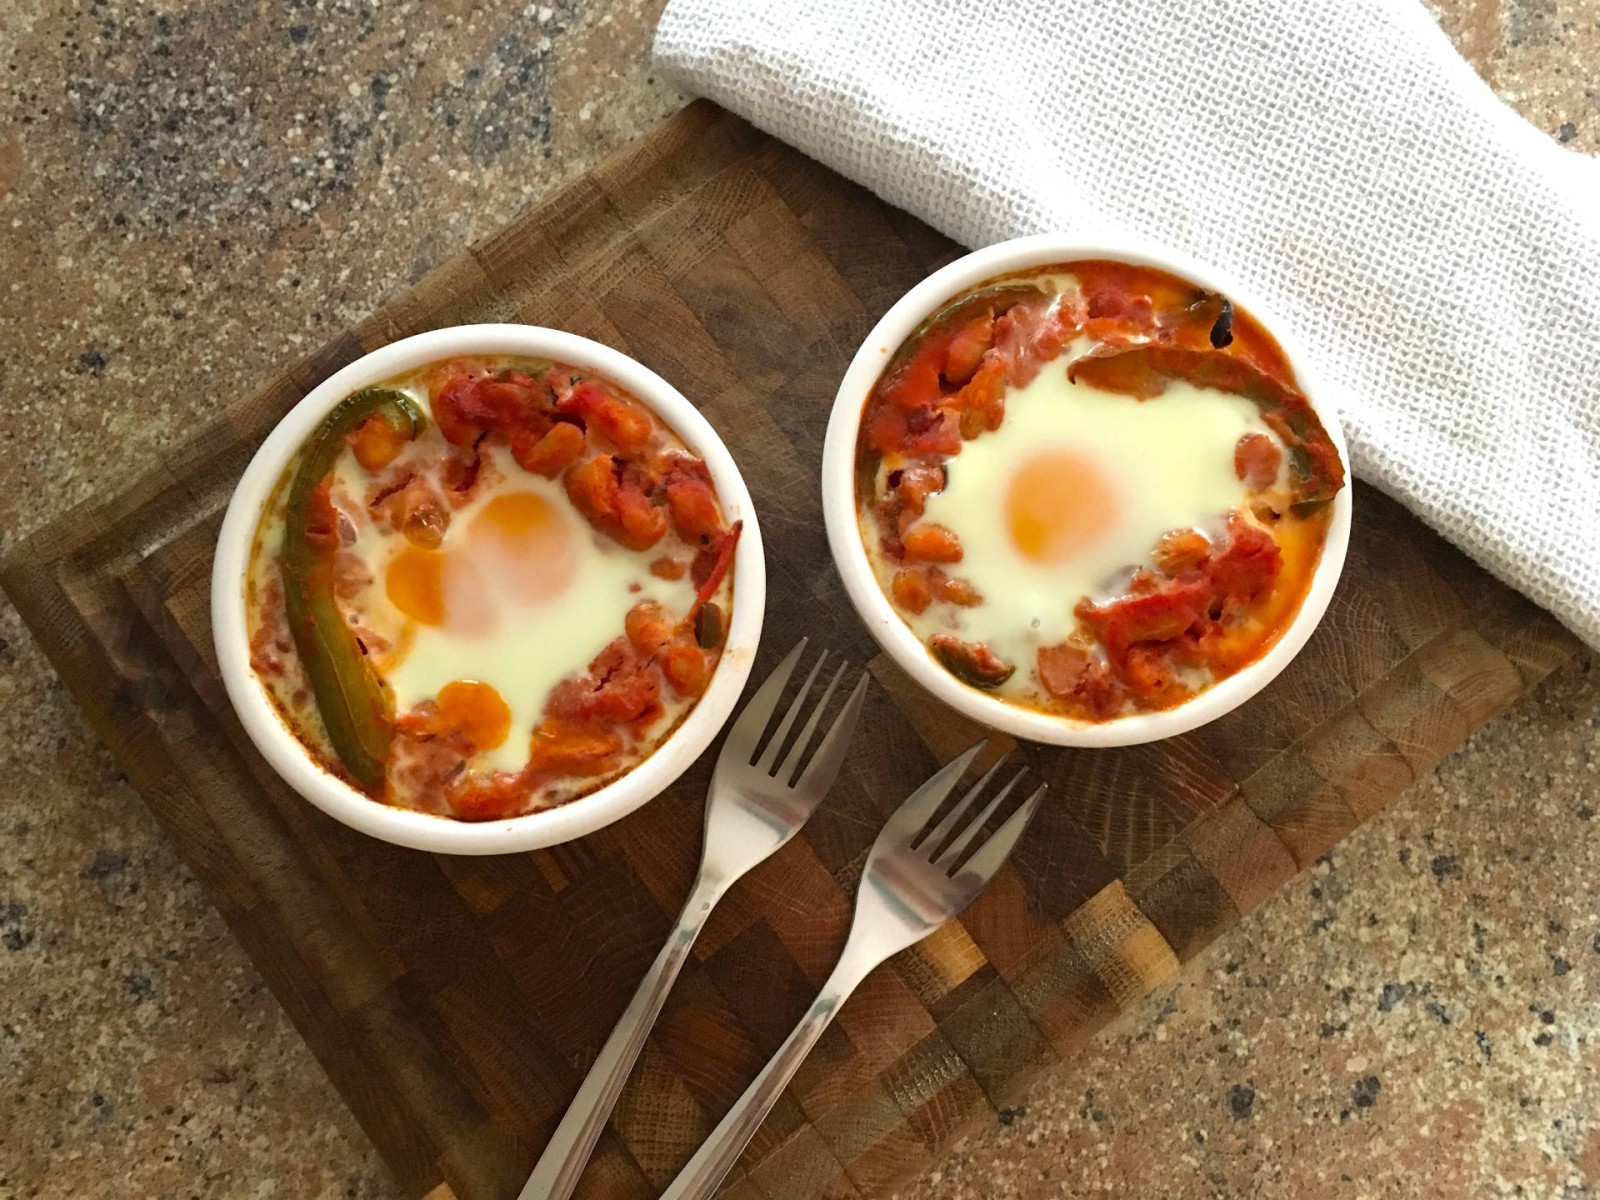 #FitFoodBMF Recipe: Spicy Baked Eggs